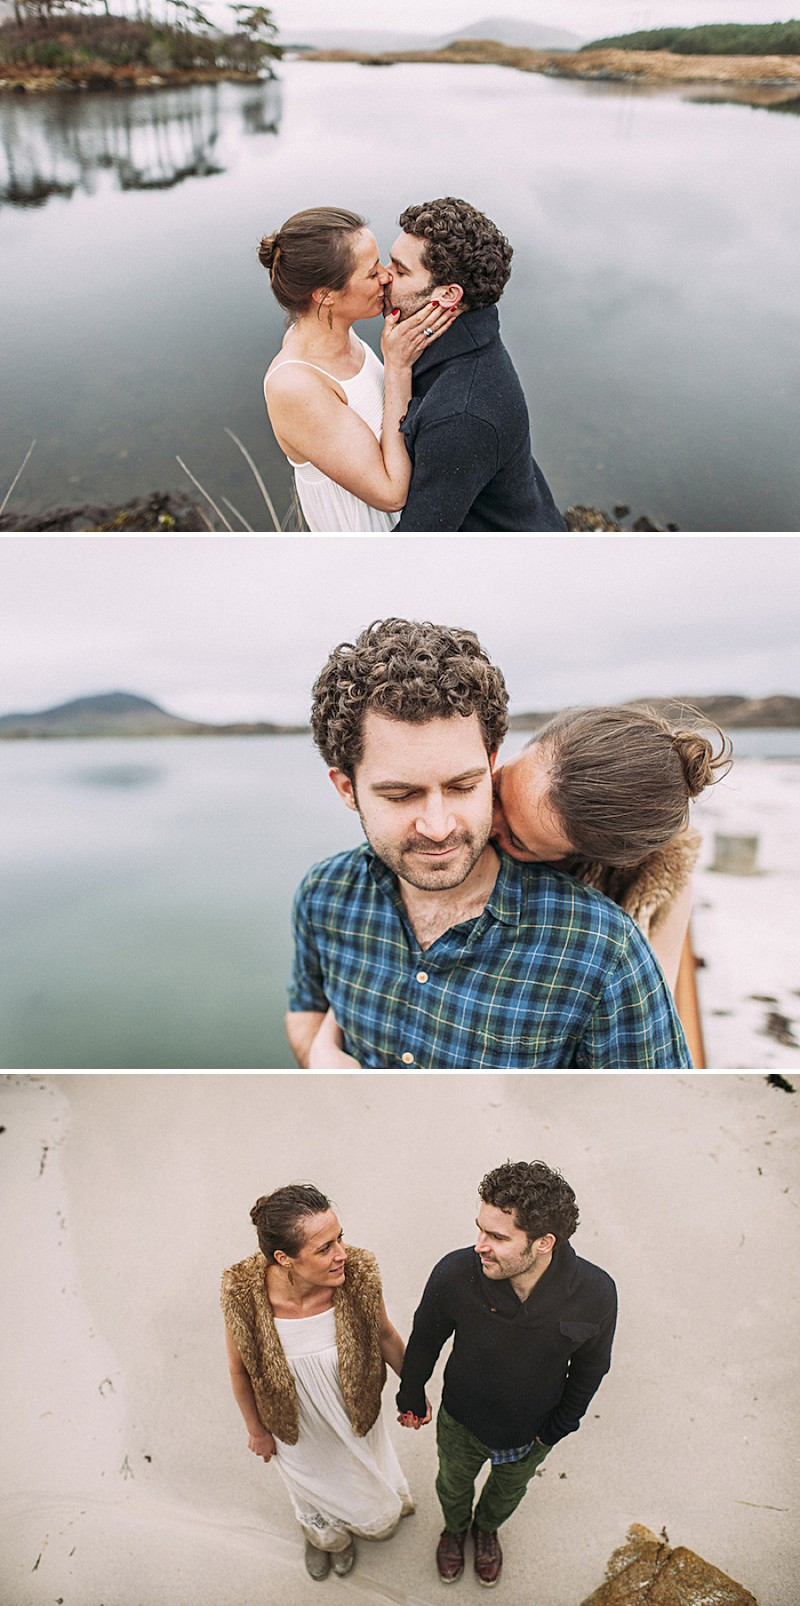 Atmospheric Engagement Shoot From Connemara In West Ireland With Images From Thierry Joubert At Pretty Days Photography_0001